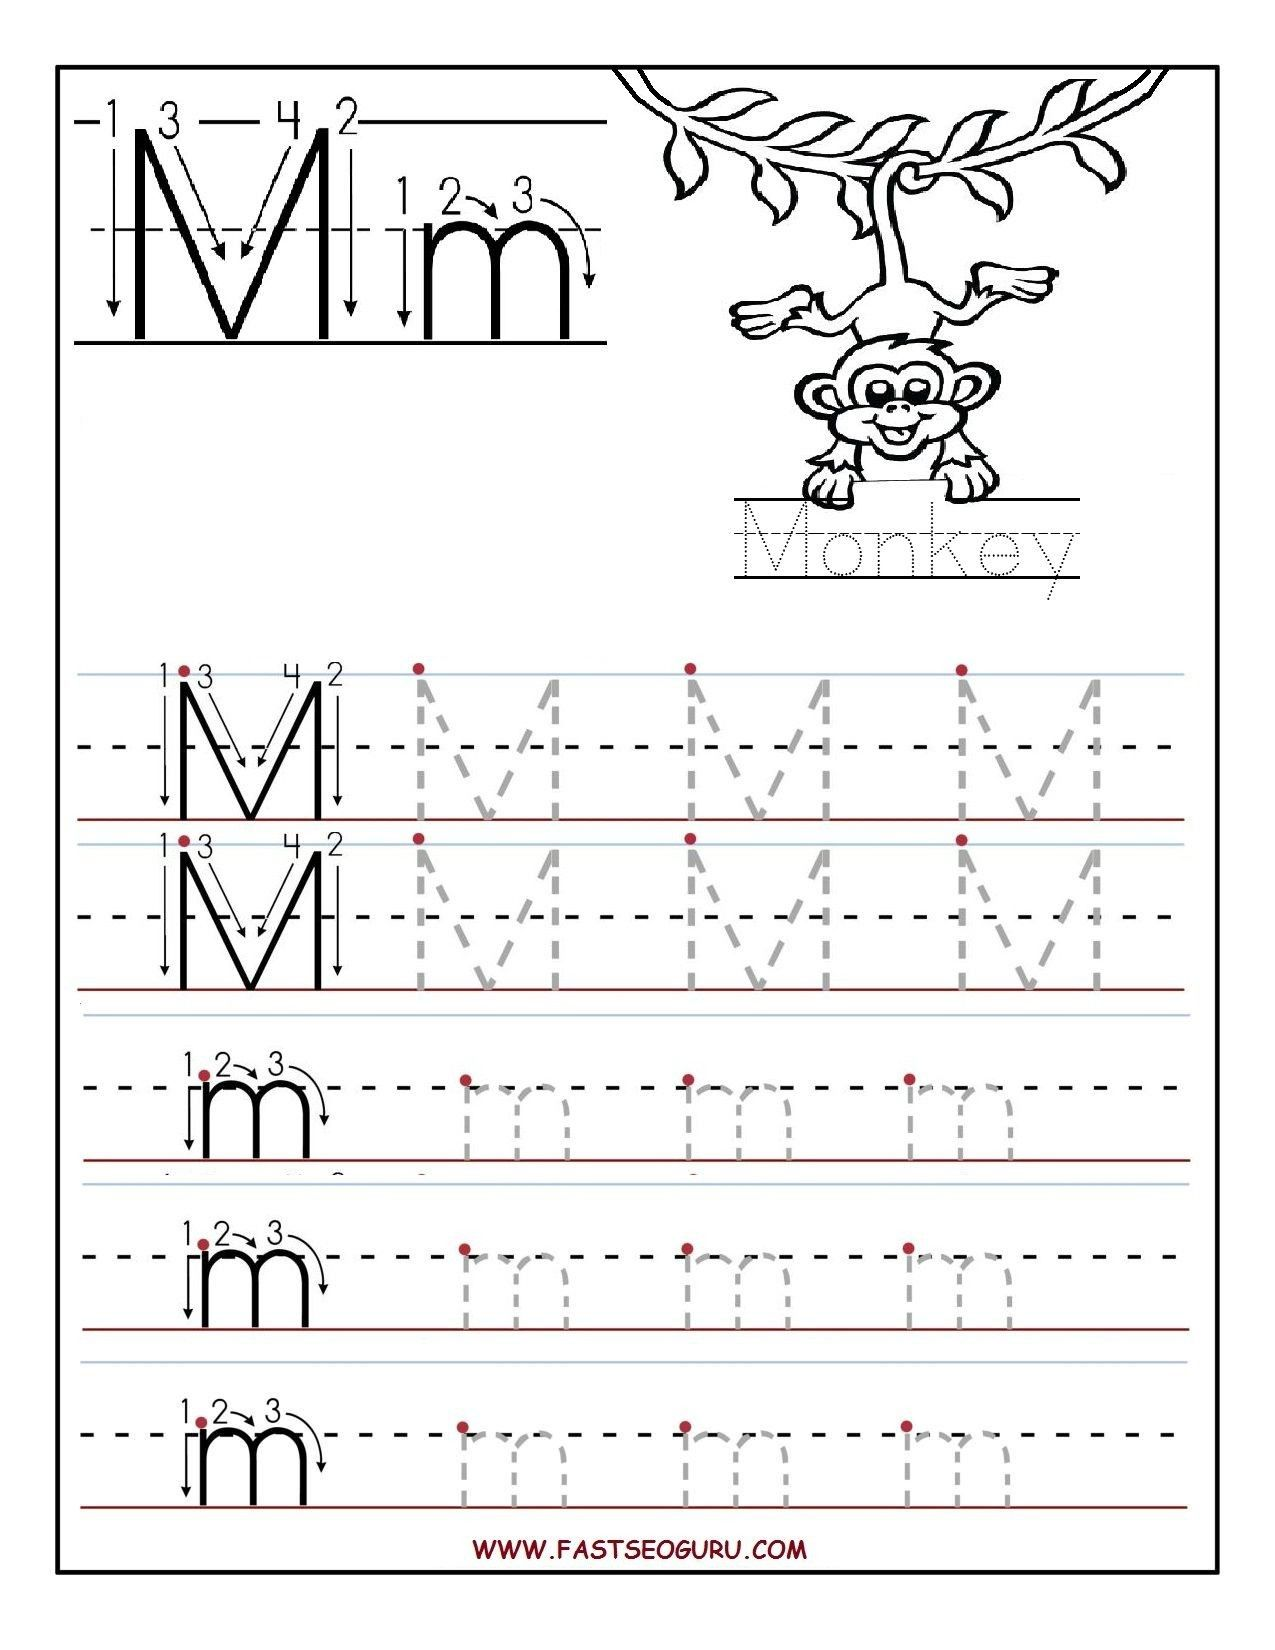 3 Worksheet Free Preschool Kindergarten Worksheets Letters